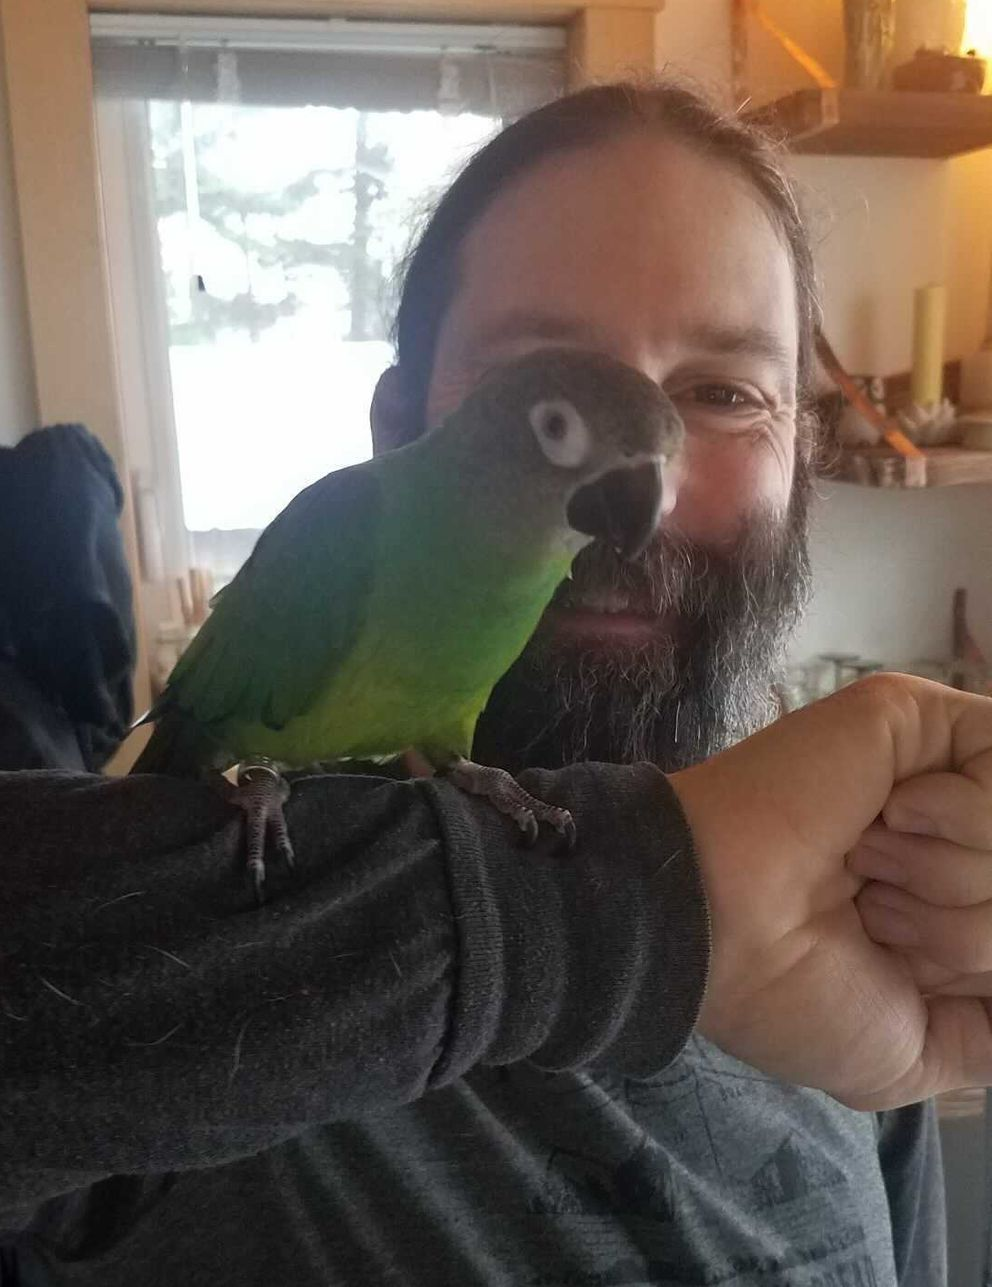 Axel, a sooty-headed conure, is perched on the arm of Jedediah Blum-Evitts on Tuesday, Dec. 8, 2020, in Haines. Axel is one of the two displaced birds being taken care of by Caitie Kirby and friend Blum-Evitts until their owner can safely take them back. (Caitie Kirby photo)